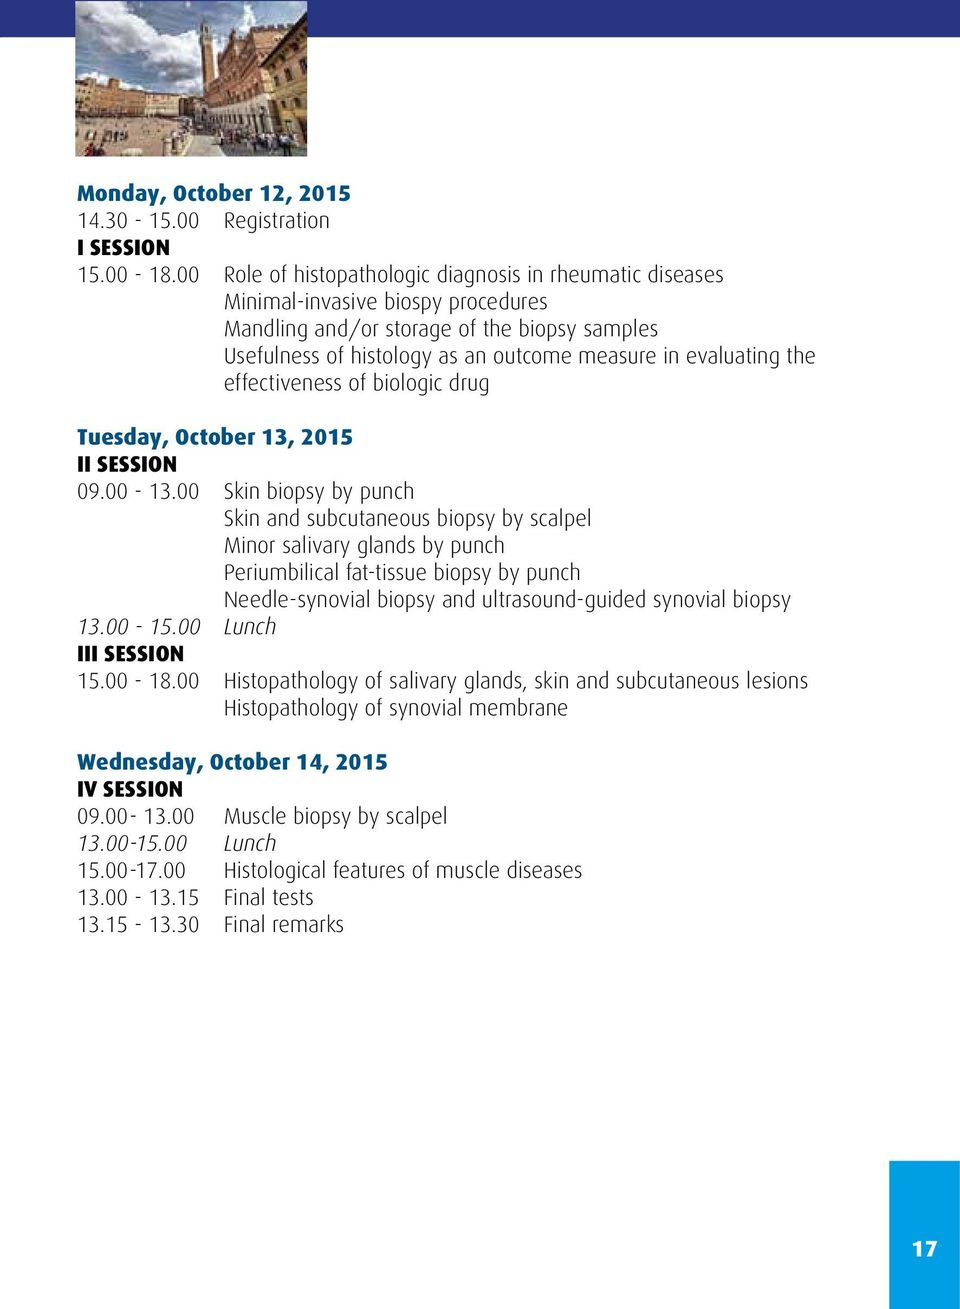 the effectiveness of biologic drug Tuesday, October 13, 2015 II SESSION 09.00-13.